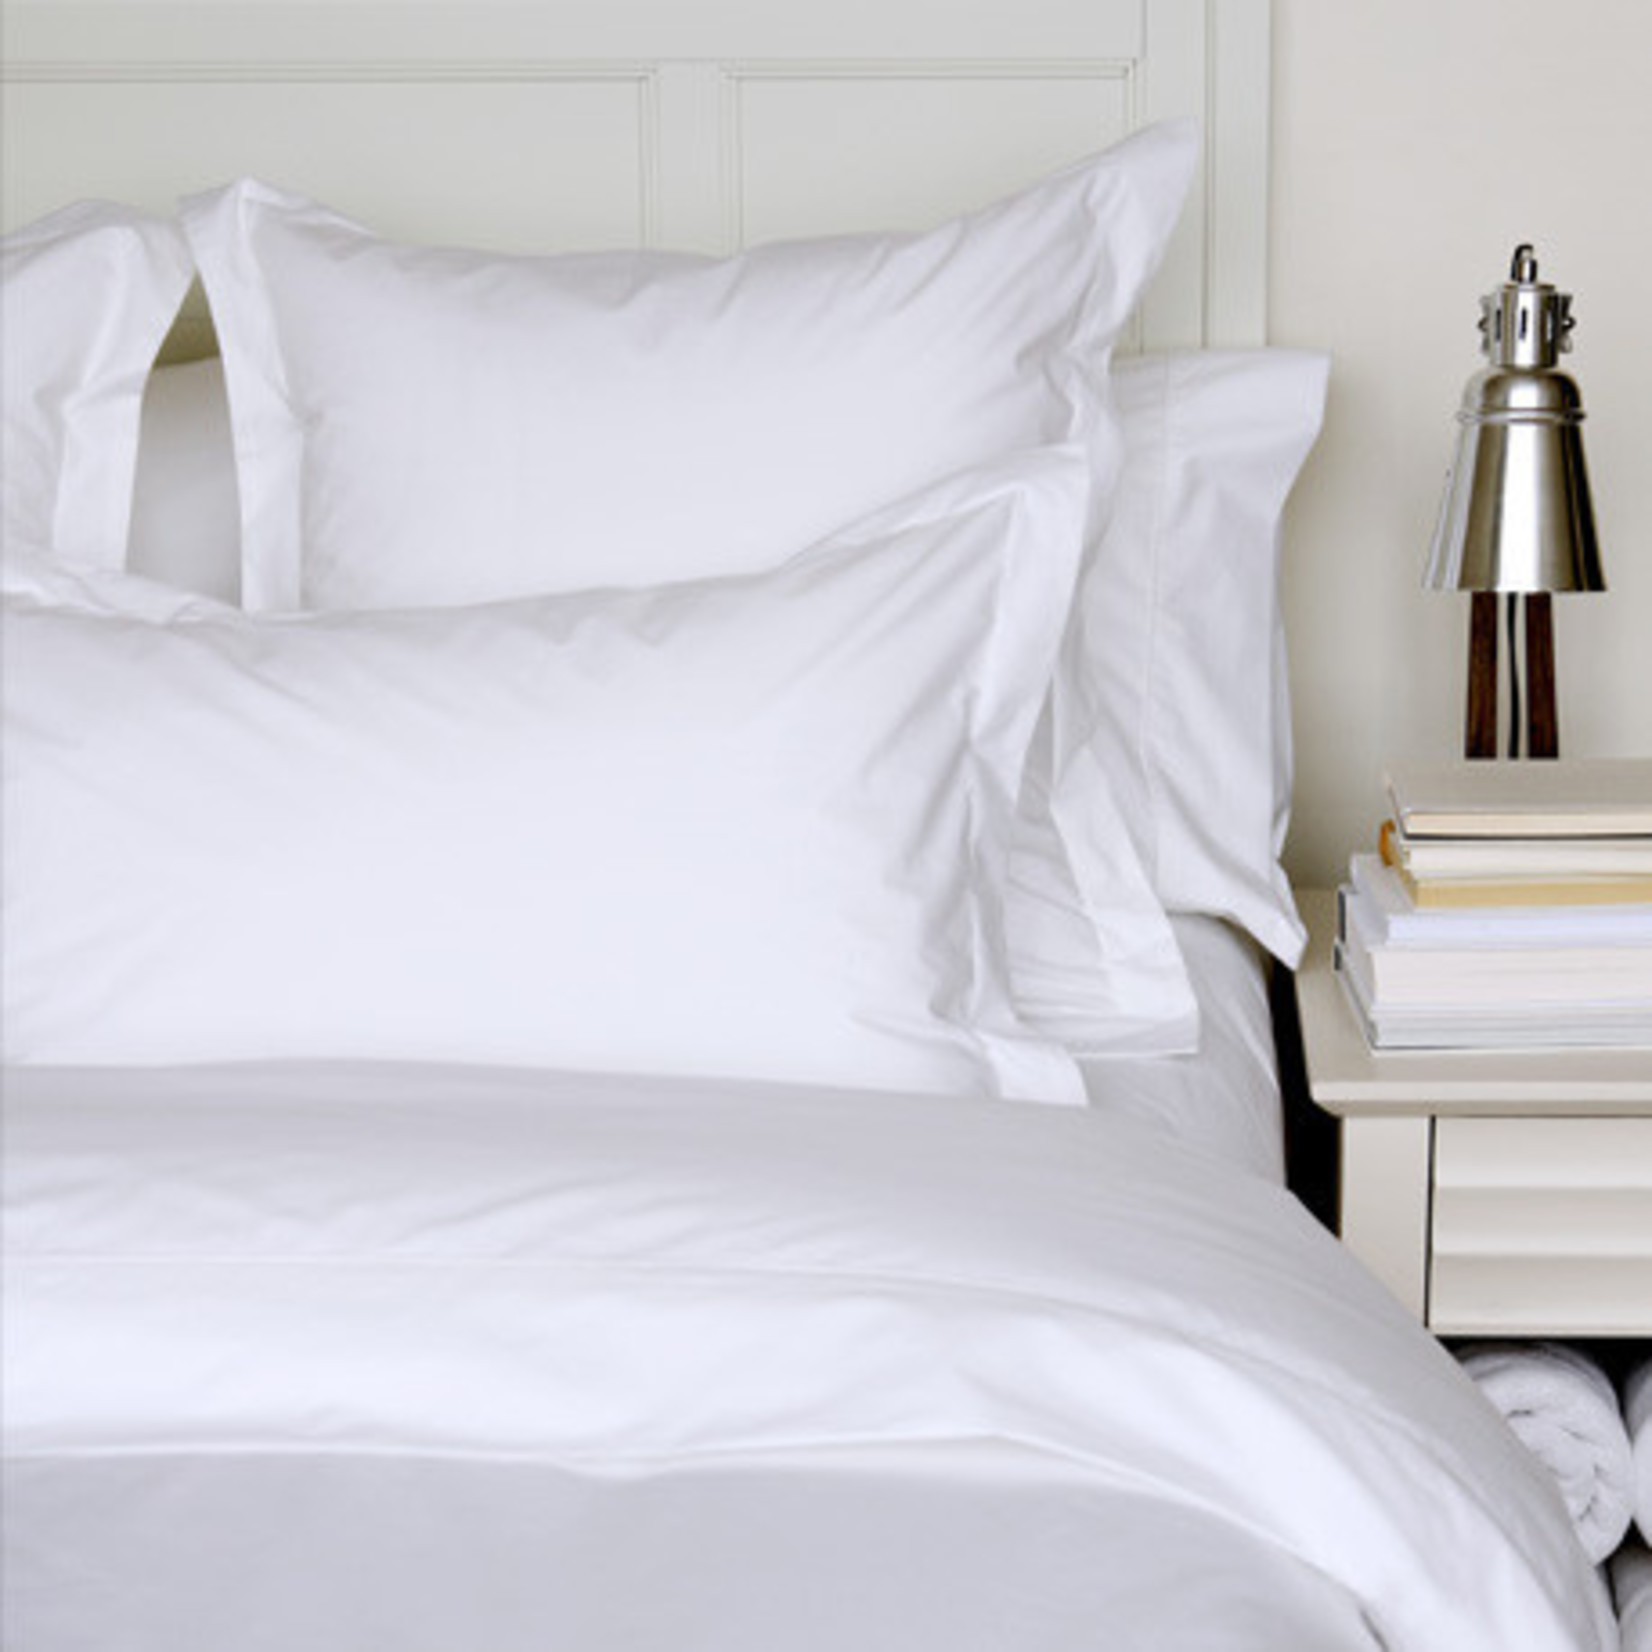 Percale Sheets & Bedding Queen (Multiple Options)